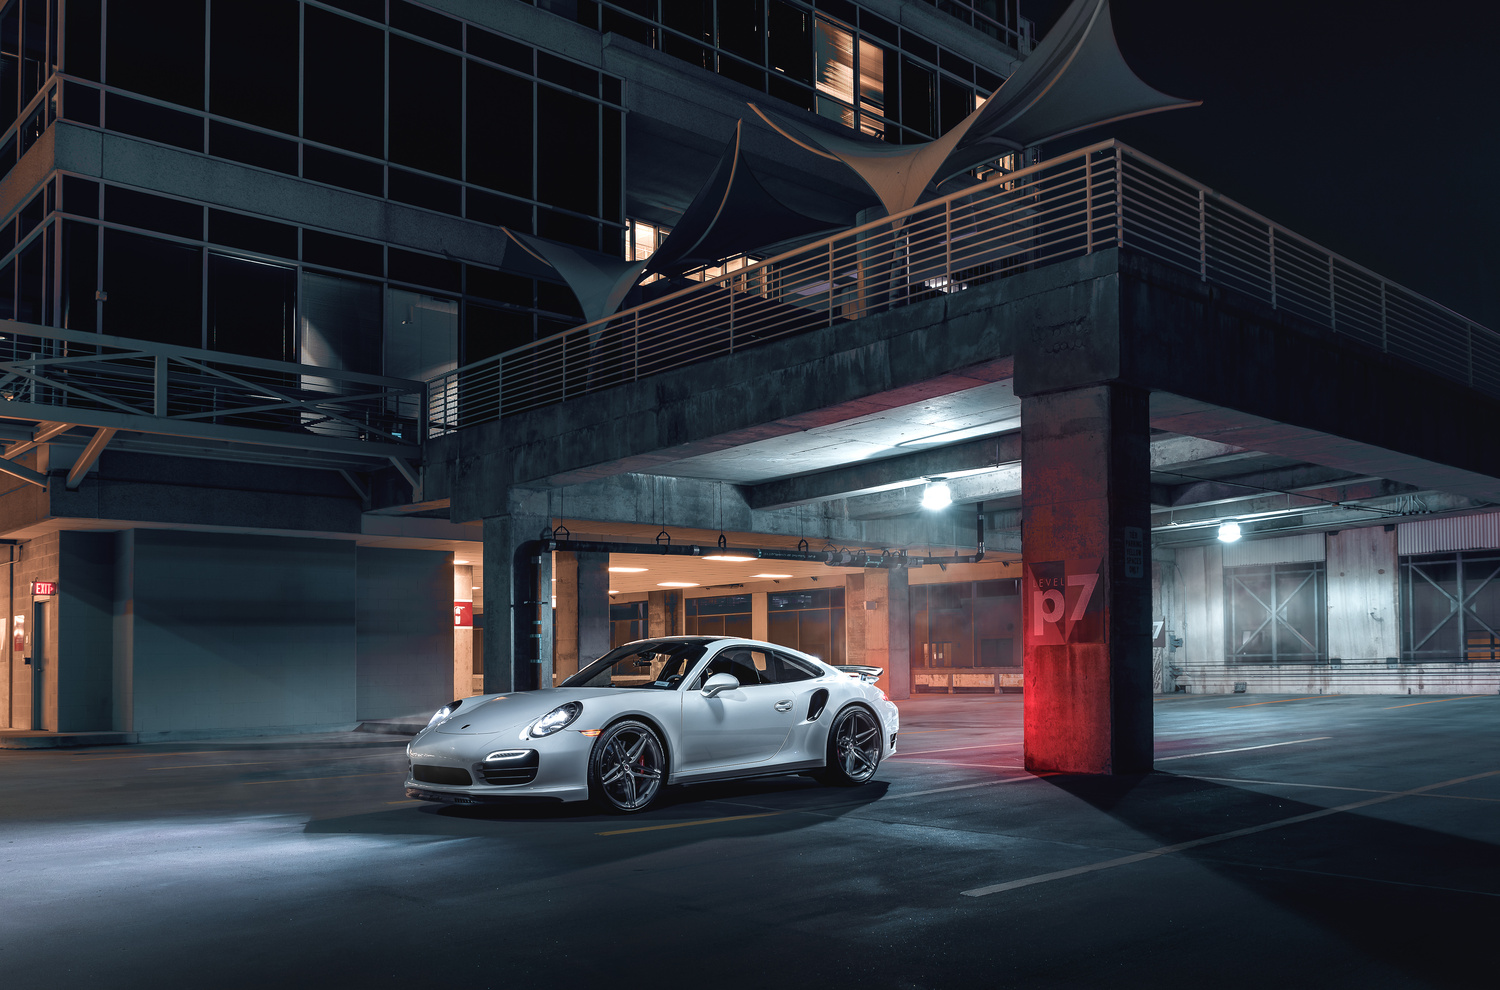 Porsche 911 Turbo by Jimmy Zhang